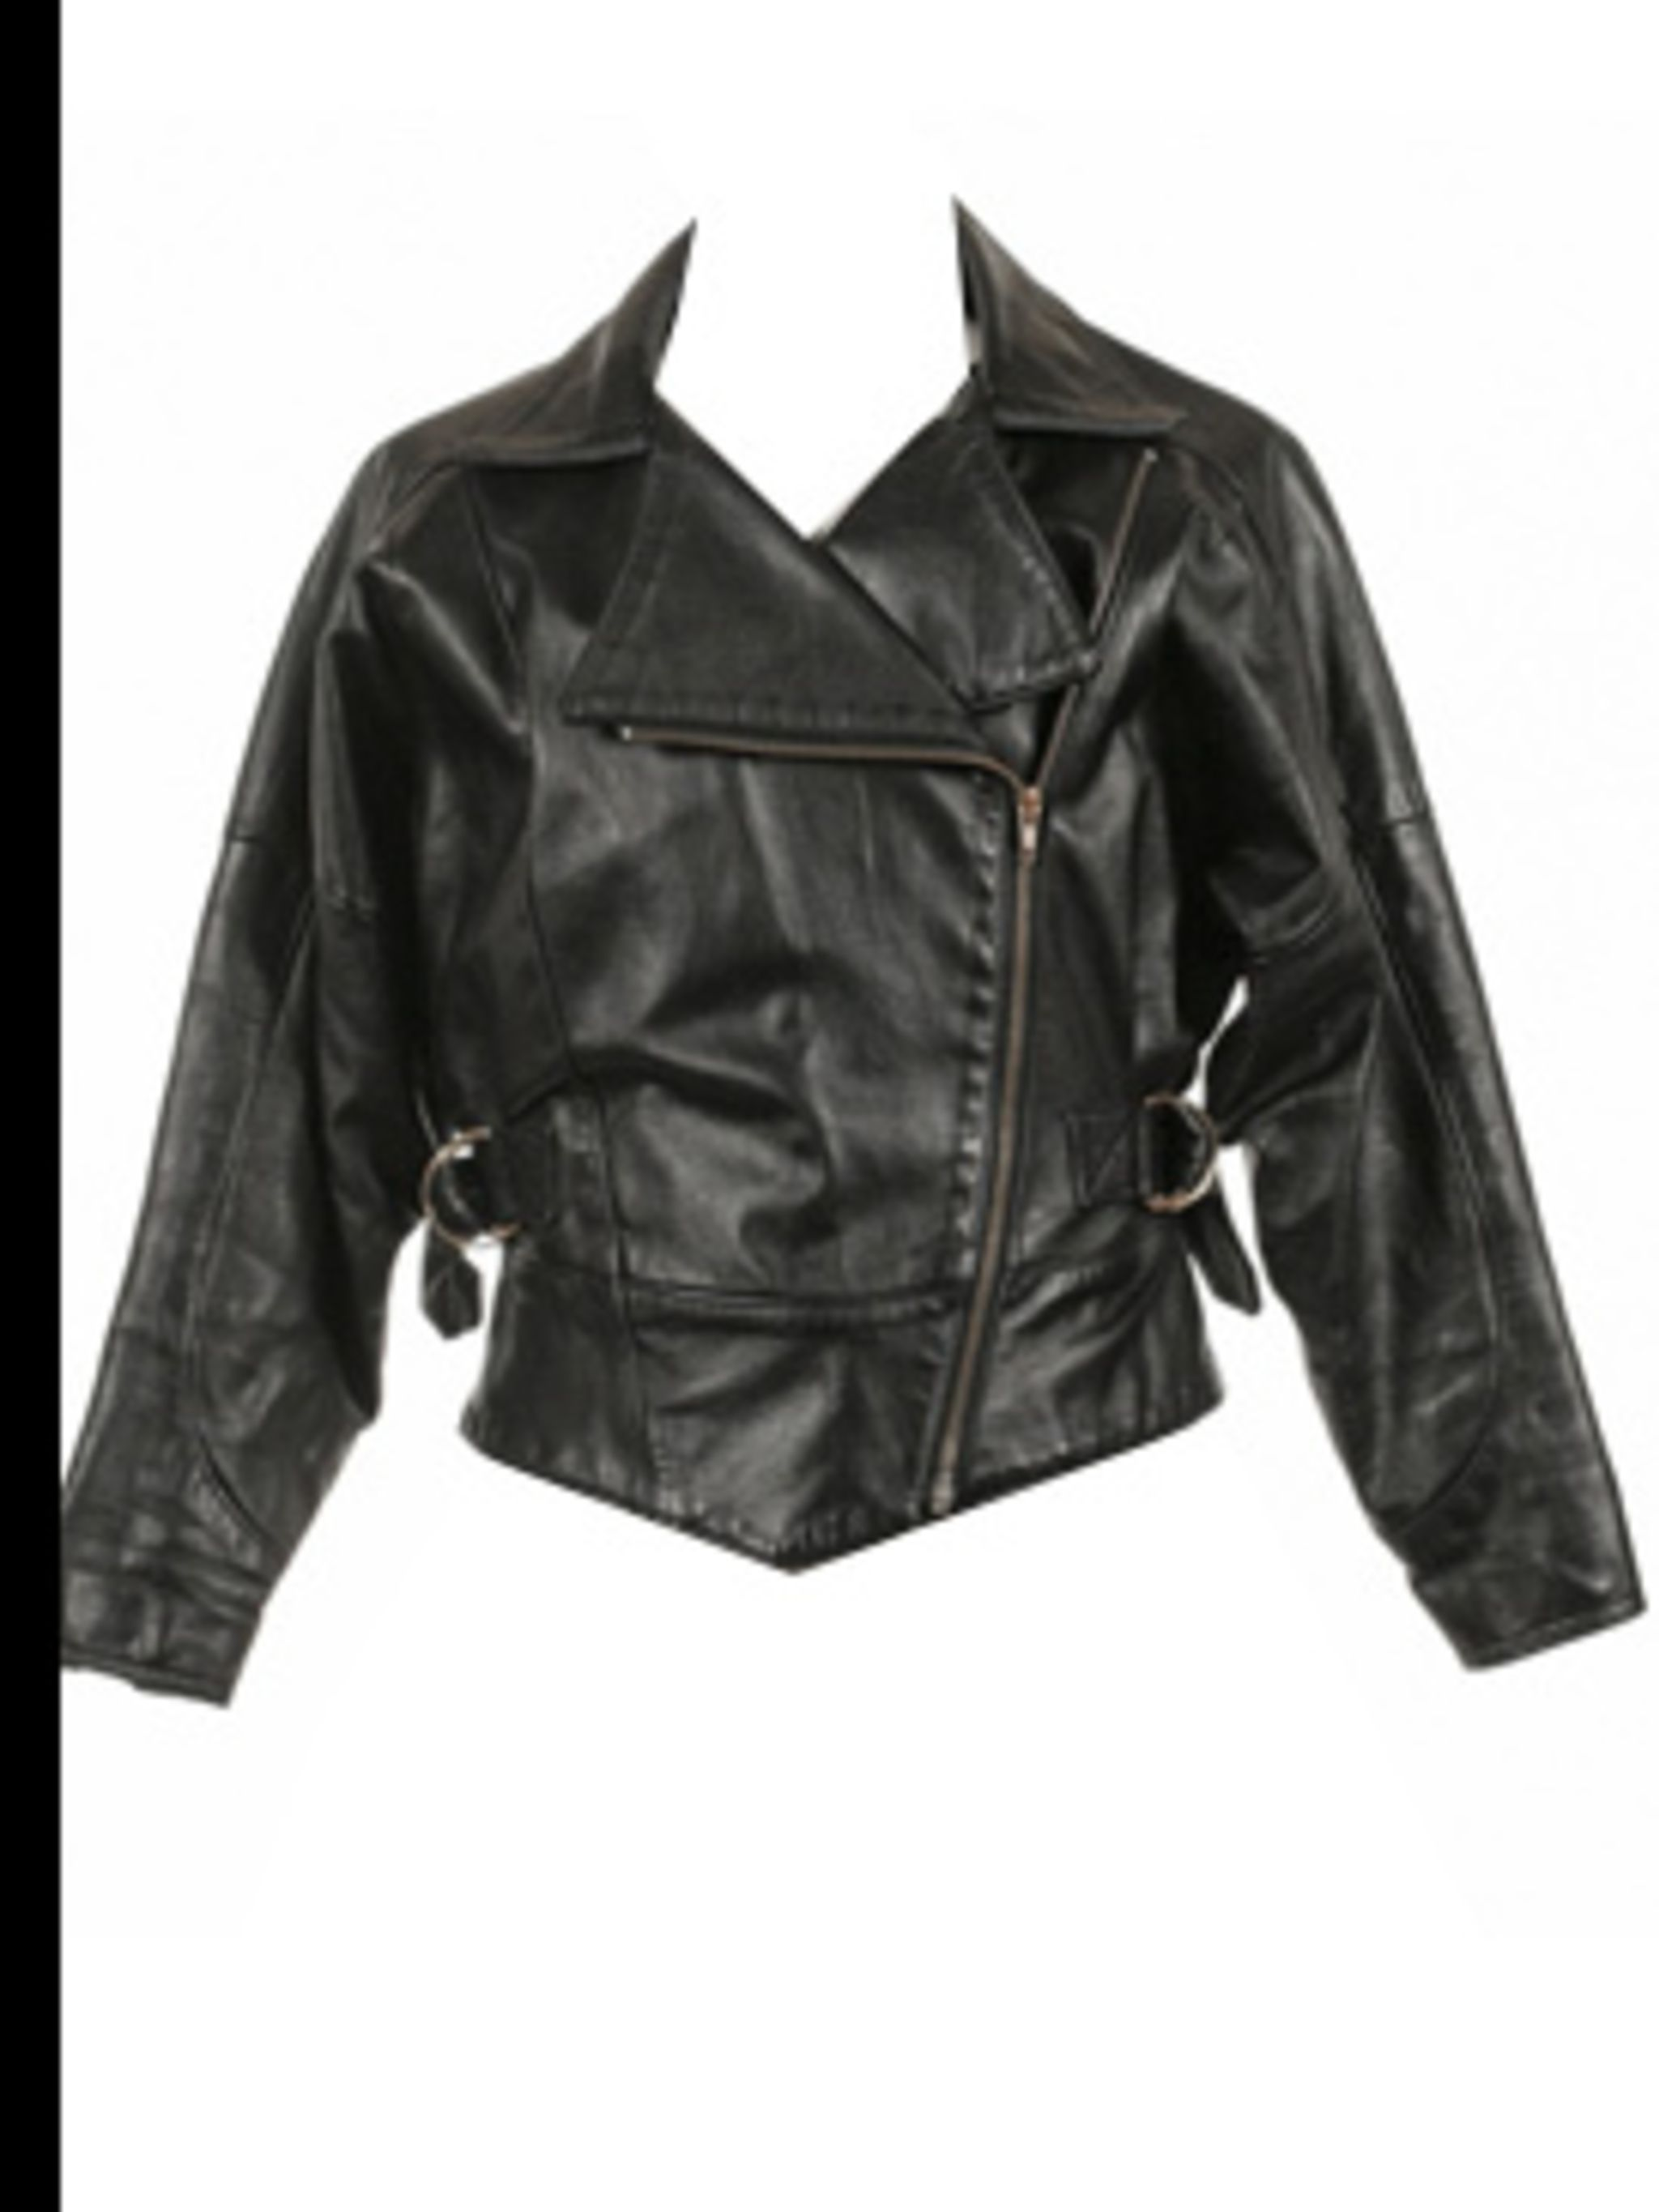 "<p>Jacket, £70.00 at <a href=""http://www.rokit.co.uk/product.php?product_id=WC400036"">Rokit</a></p>"